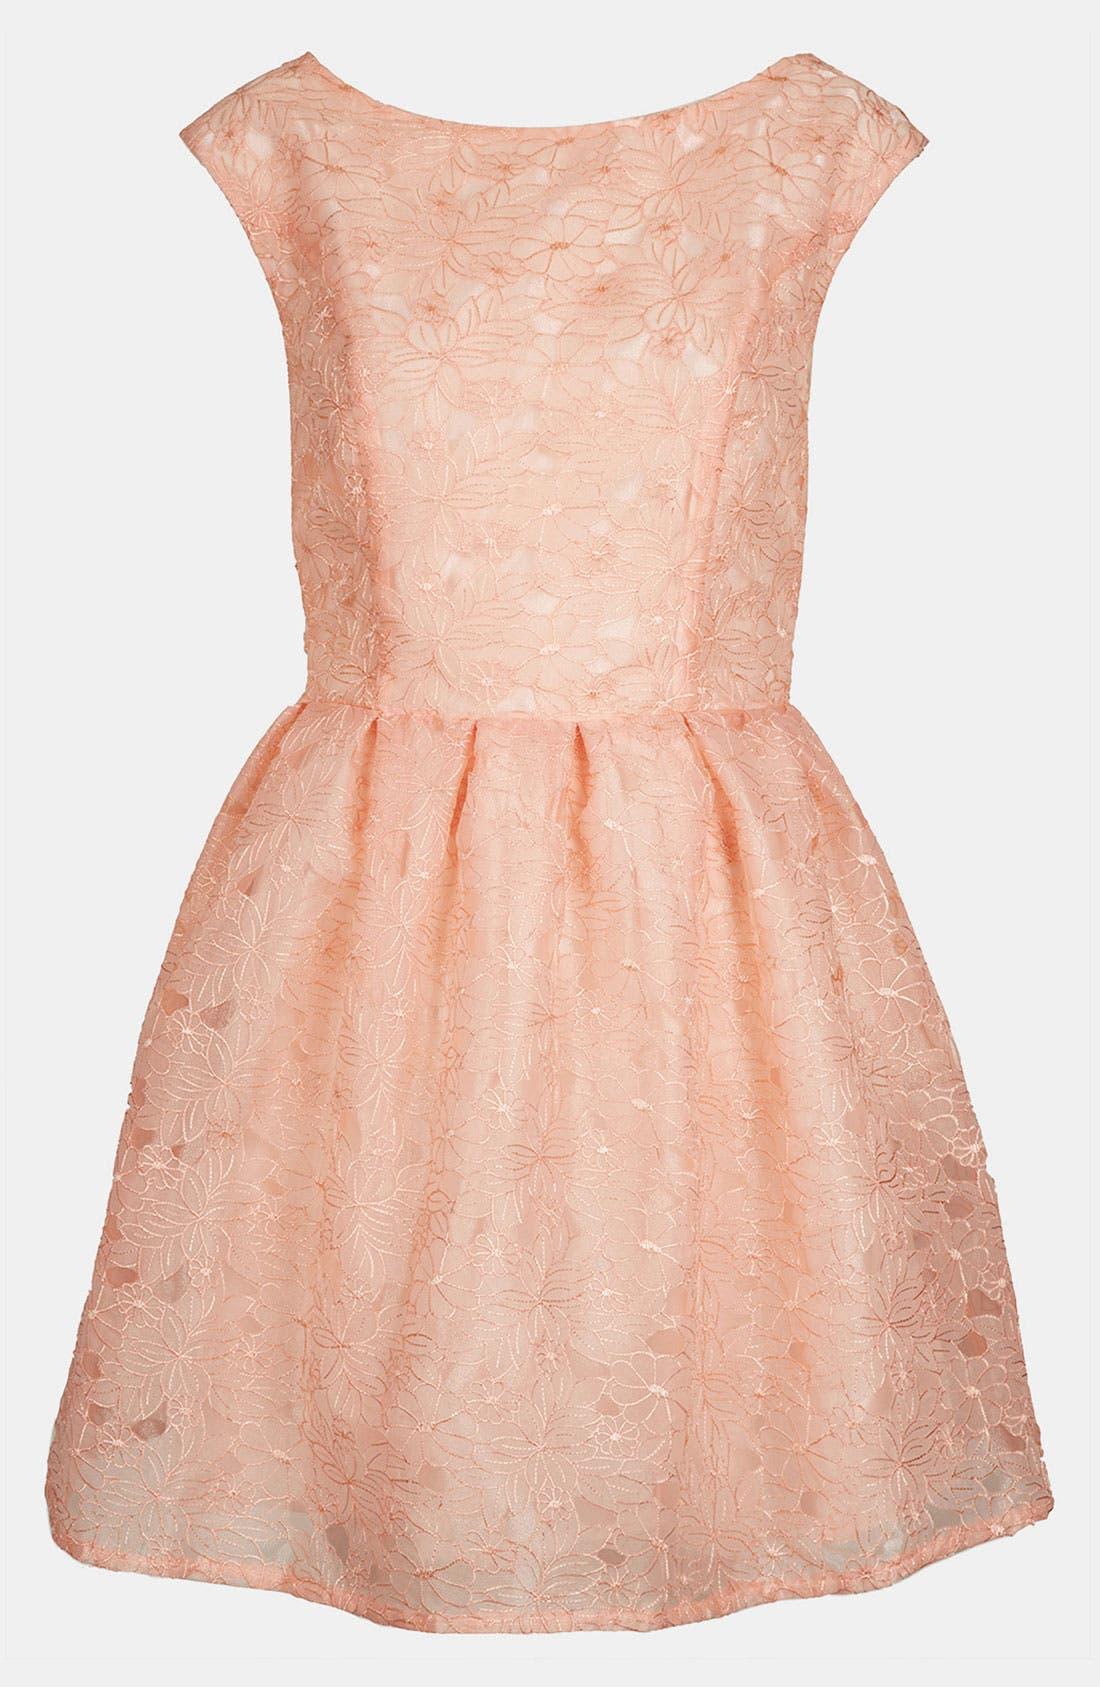 Alternate Image 1 Selected - Topshop Floral Organza Party Dress